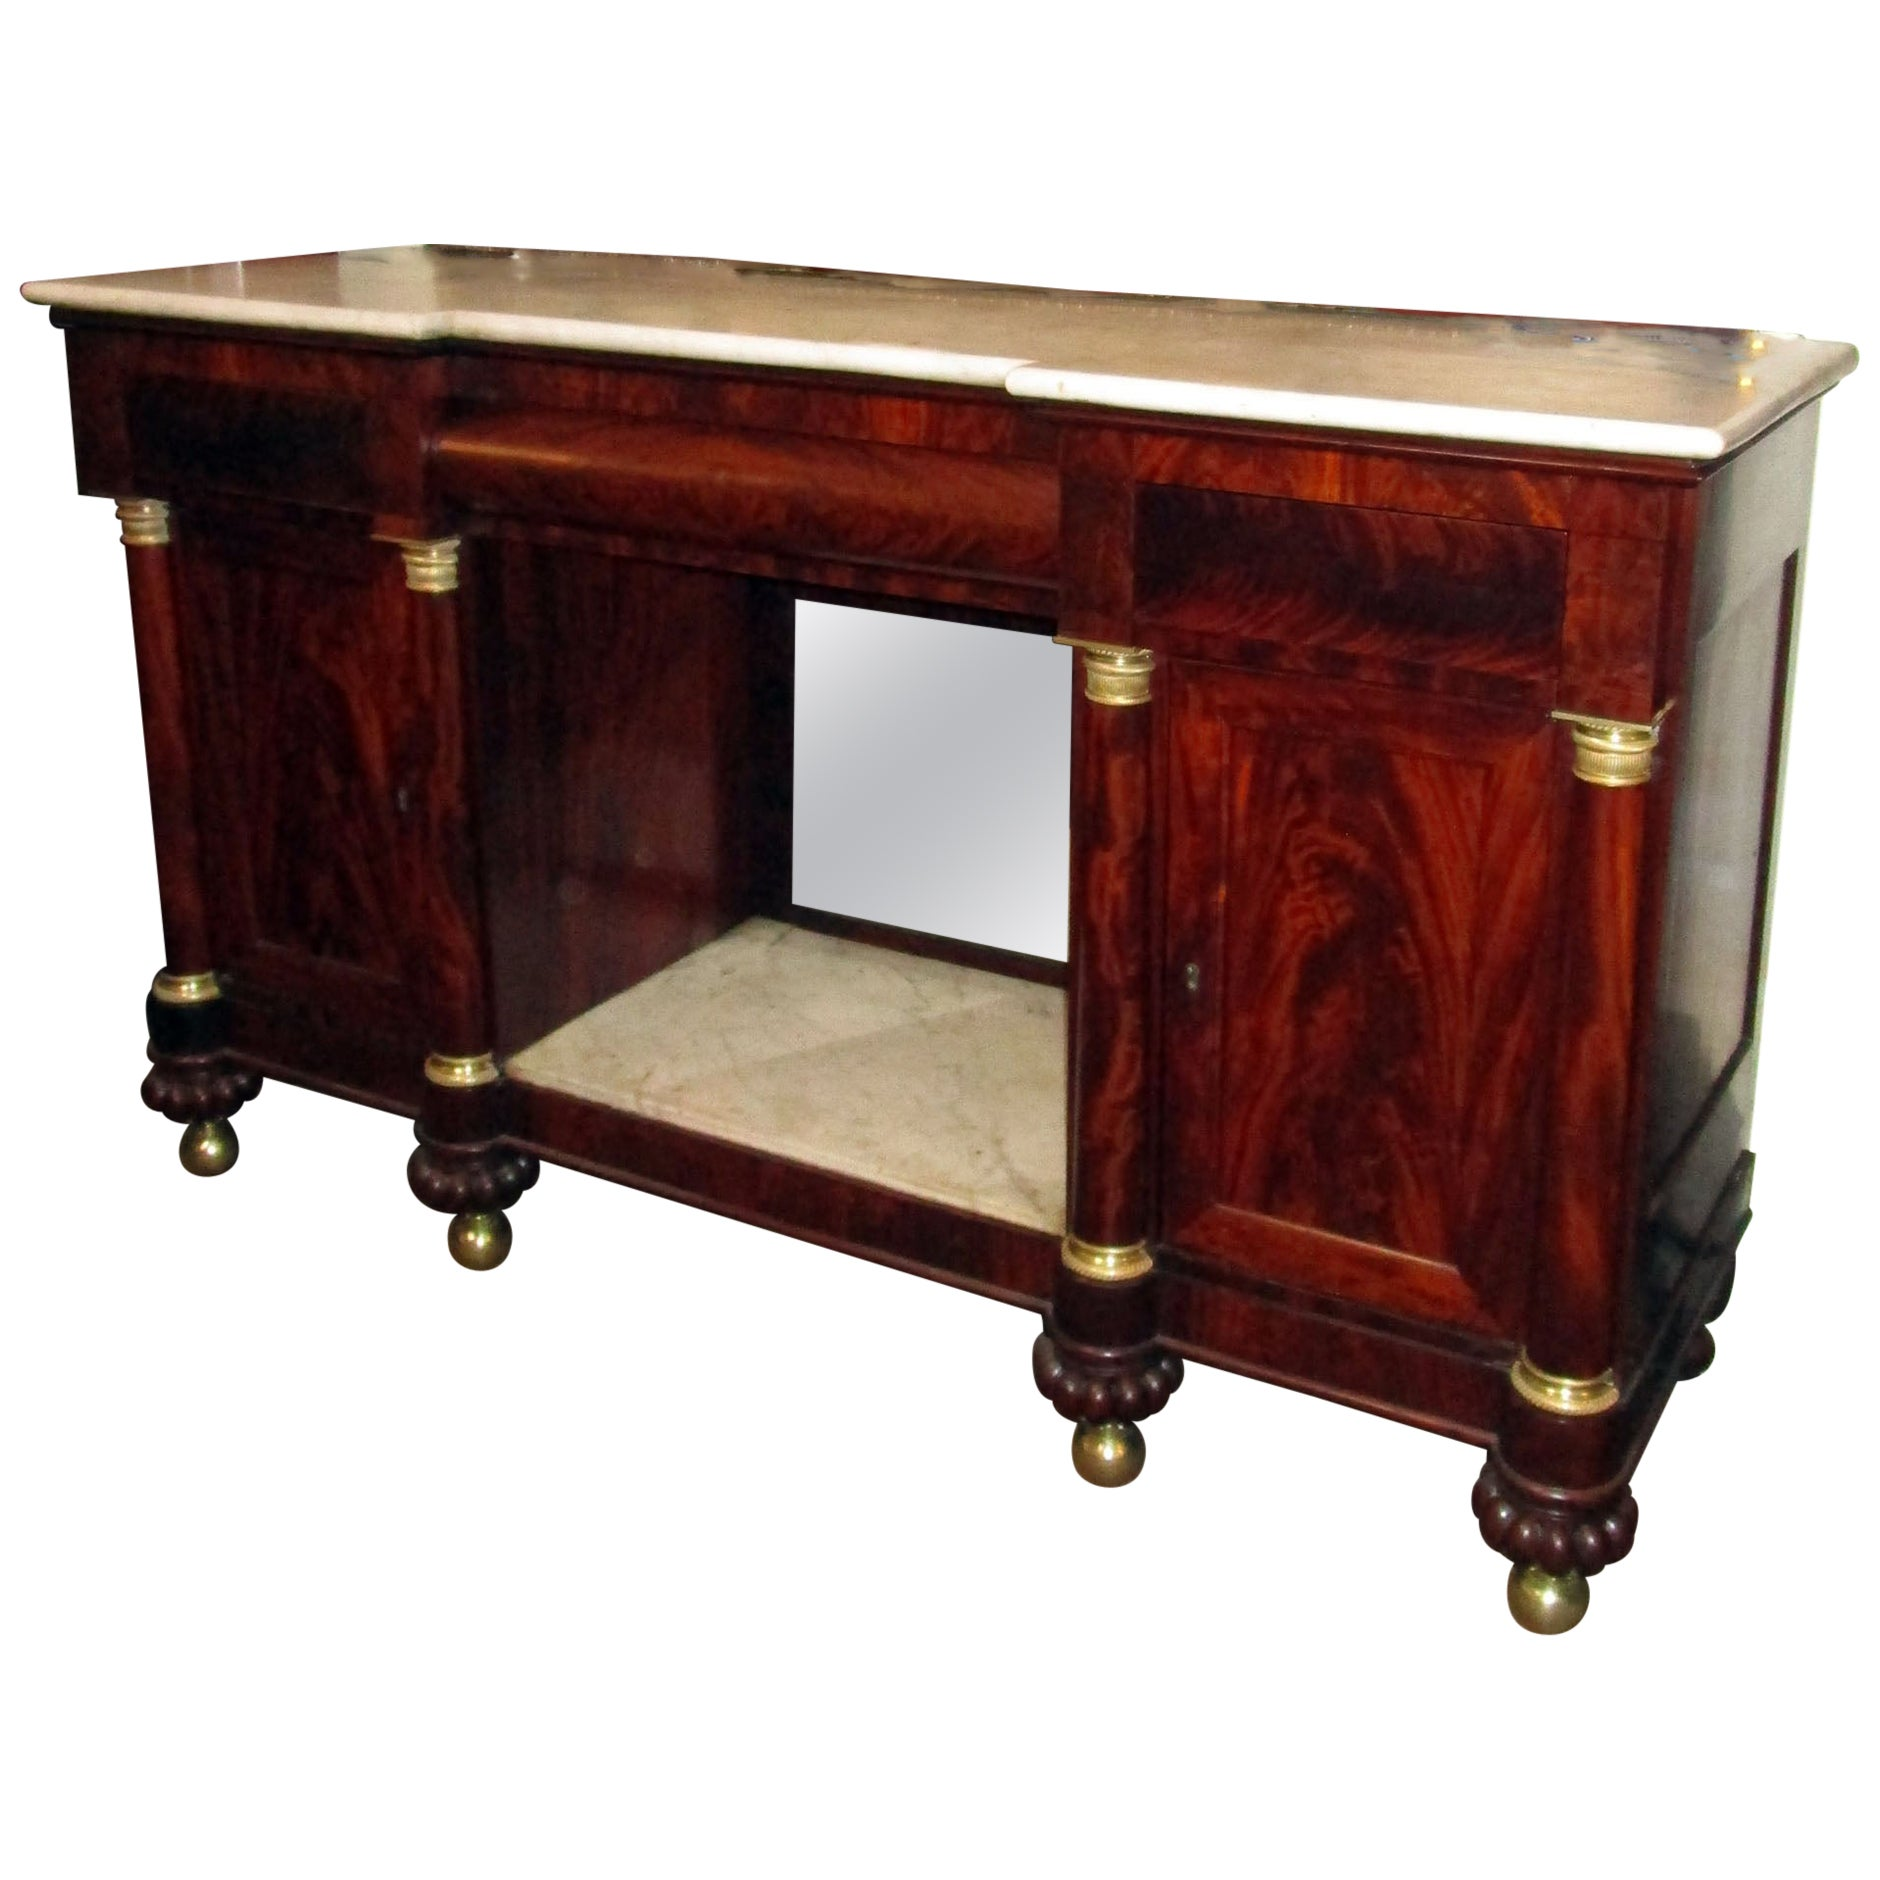 19th Century American Empire Flame Mahogany Sideboard Marble Top and Insert